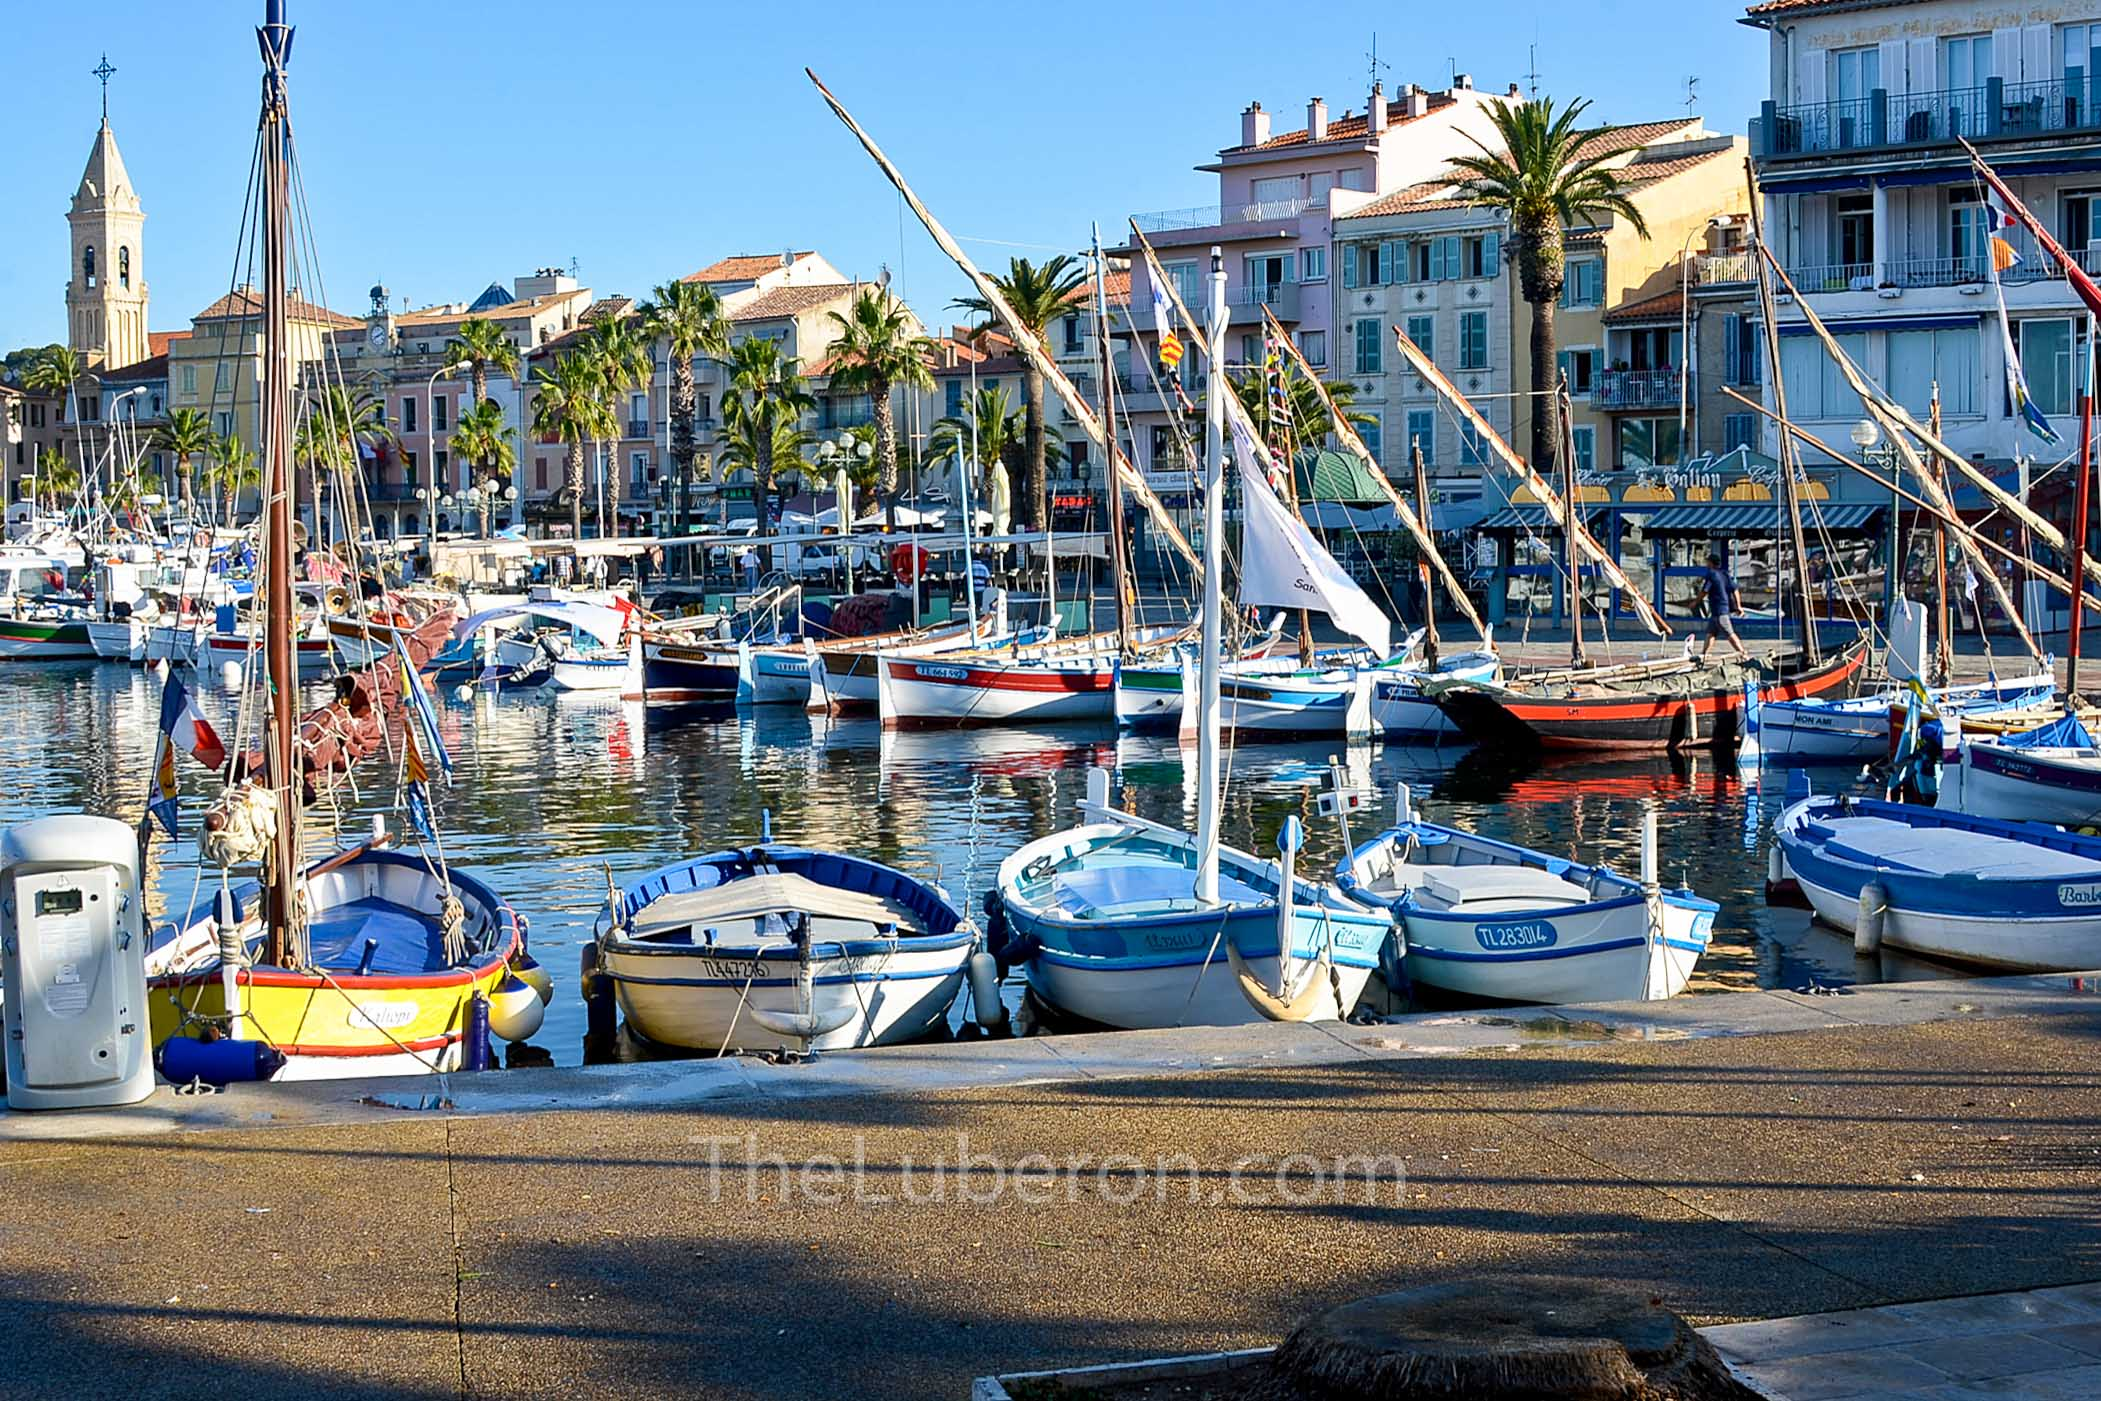 Harbour with boats at Sanary-sur-Mer